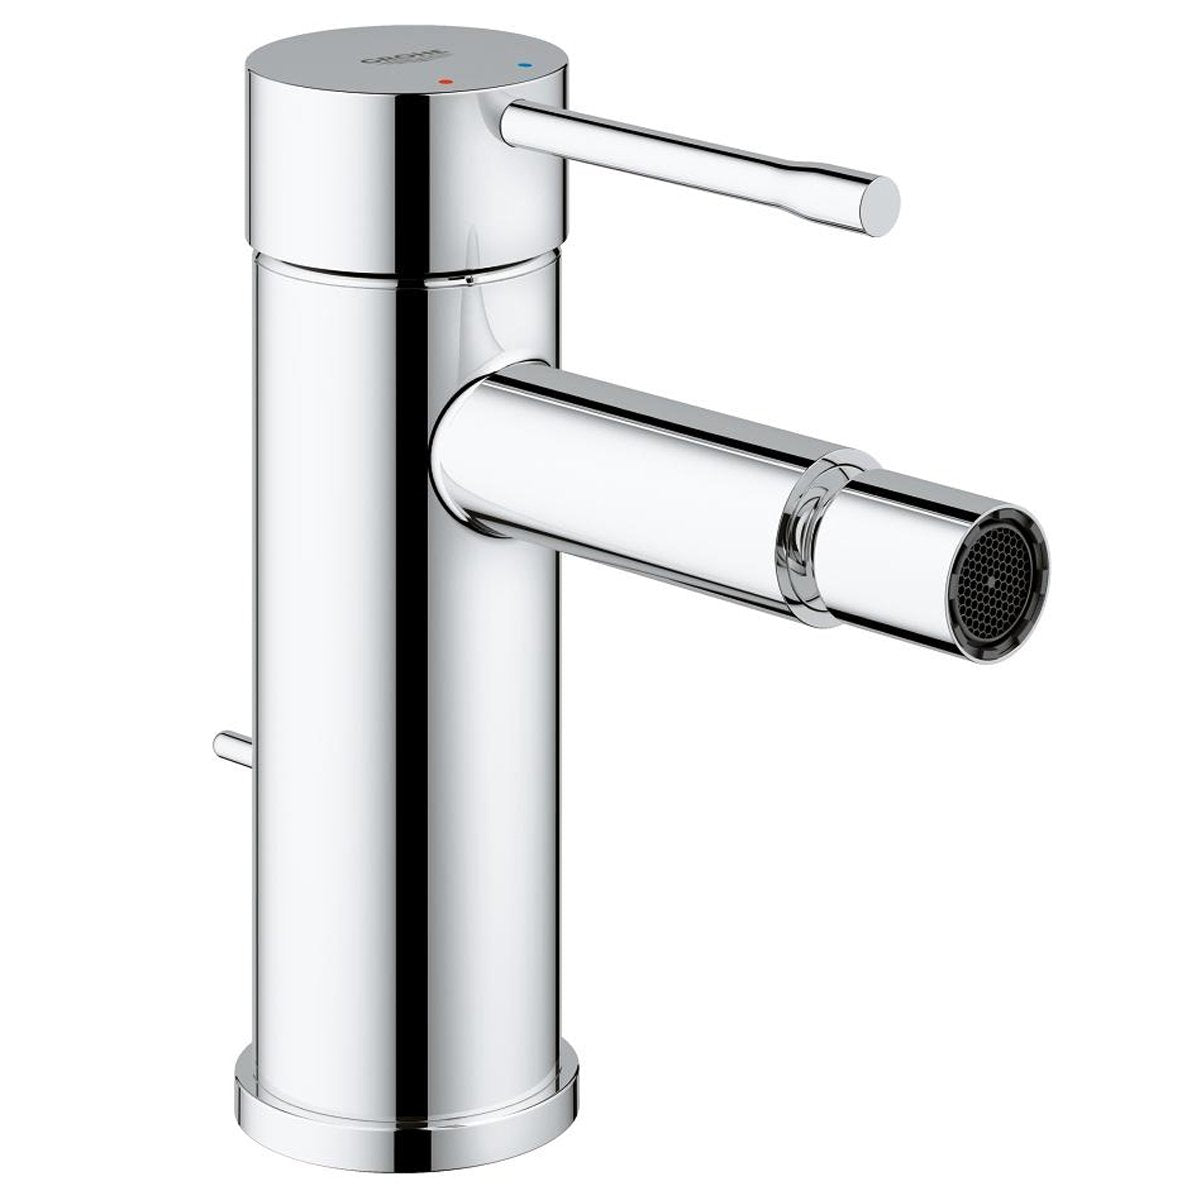 Grohe Essence S-Size 1/2 inch Bidet Mixer Tap with Pop-up Waste - Chrome